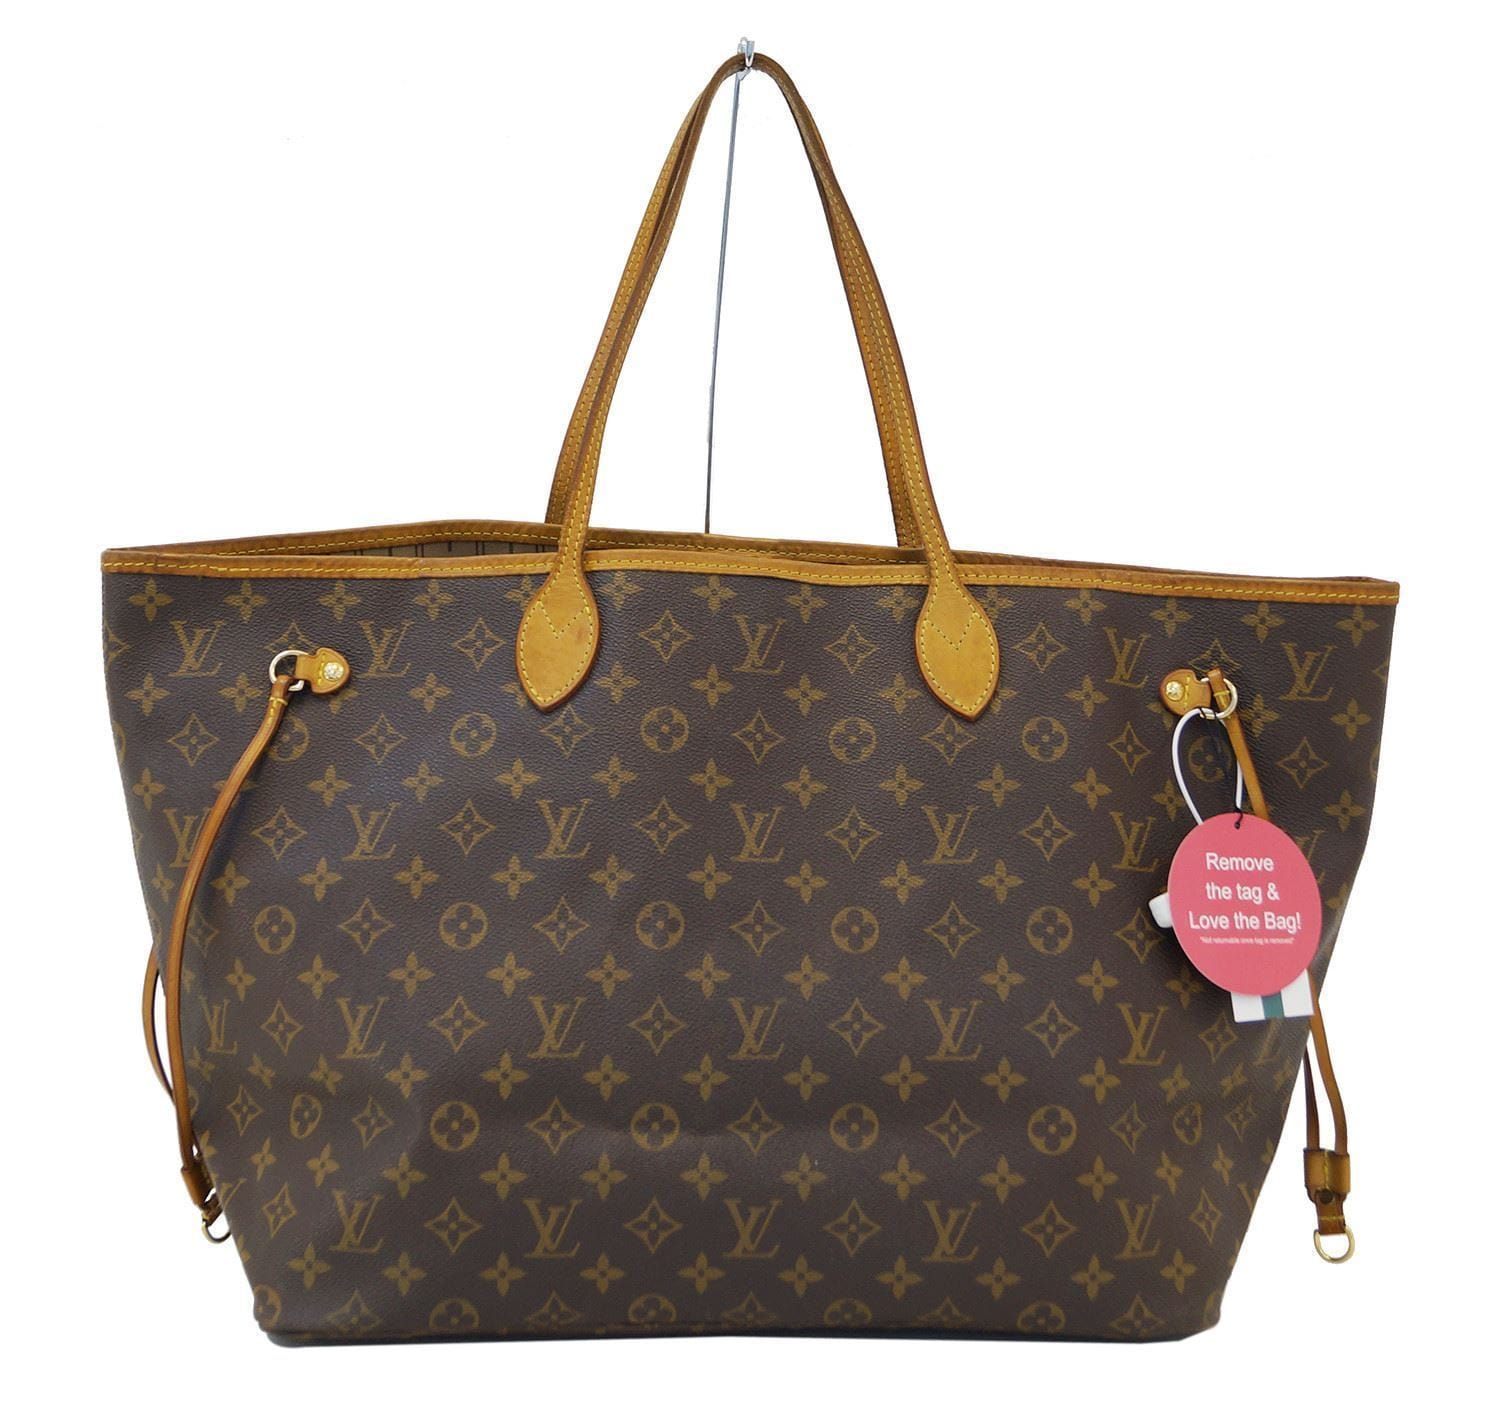 6ba0aee157 LOUIS VUITTON Monogram Neverfull GM Shoulder Bag